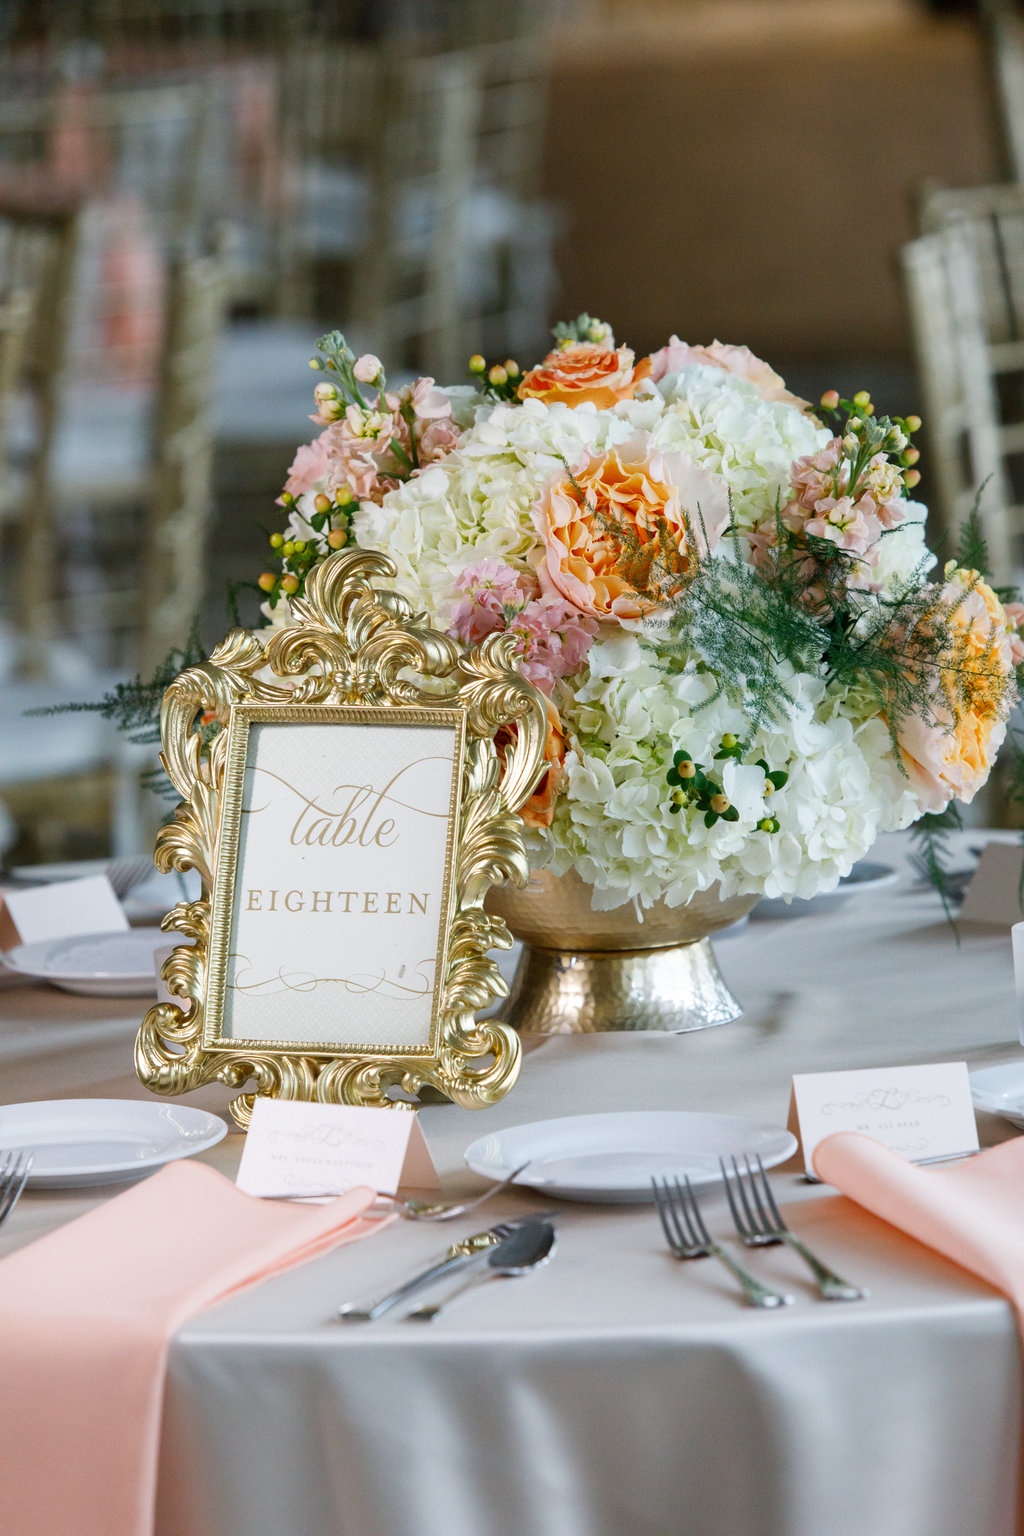 Summer wedding at Cincinnati's Cooper Creek Event Center. White and soft peach palette with stationery by Poeme. Photo Leppert Photography